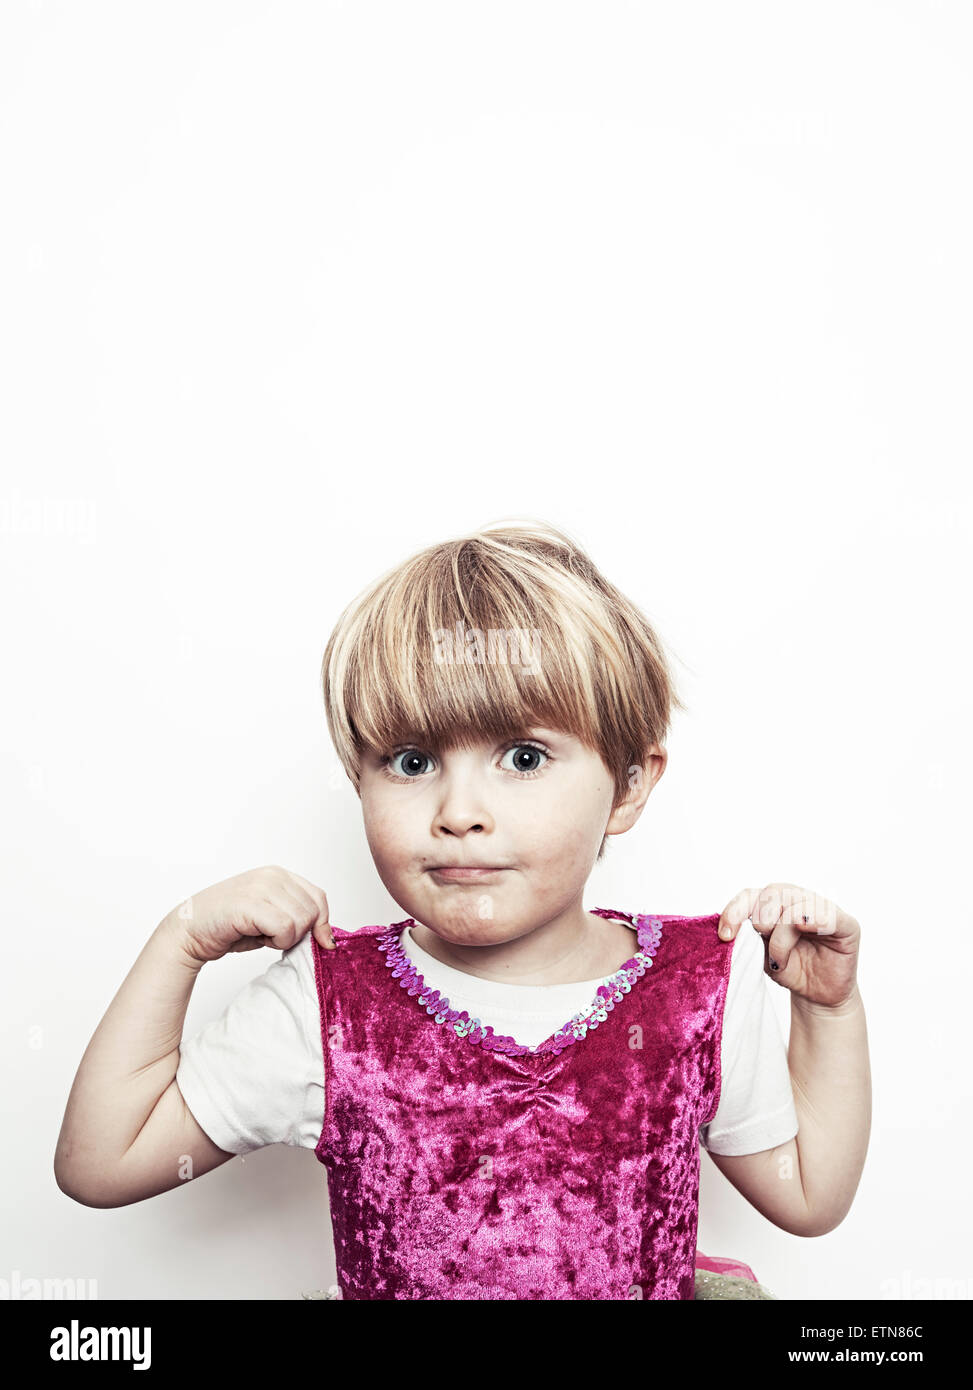 Boy showing off his pink shirt - Stock Image